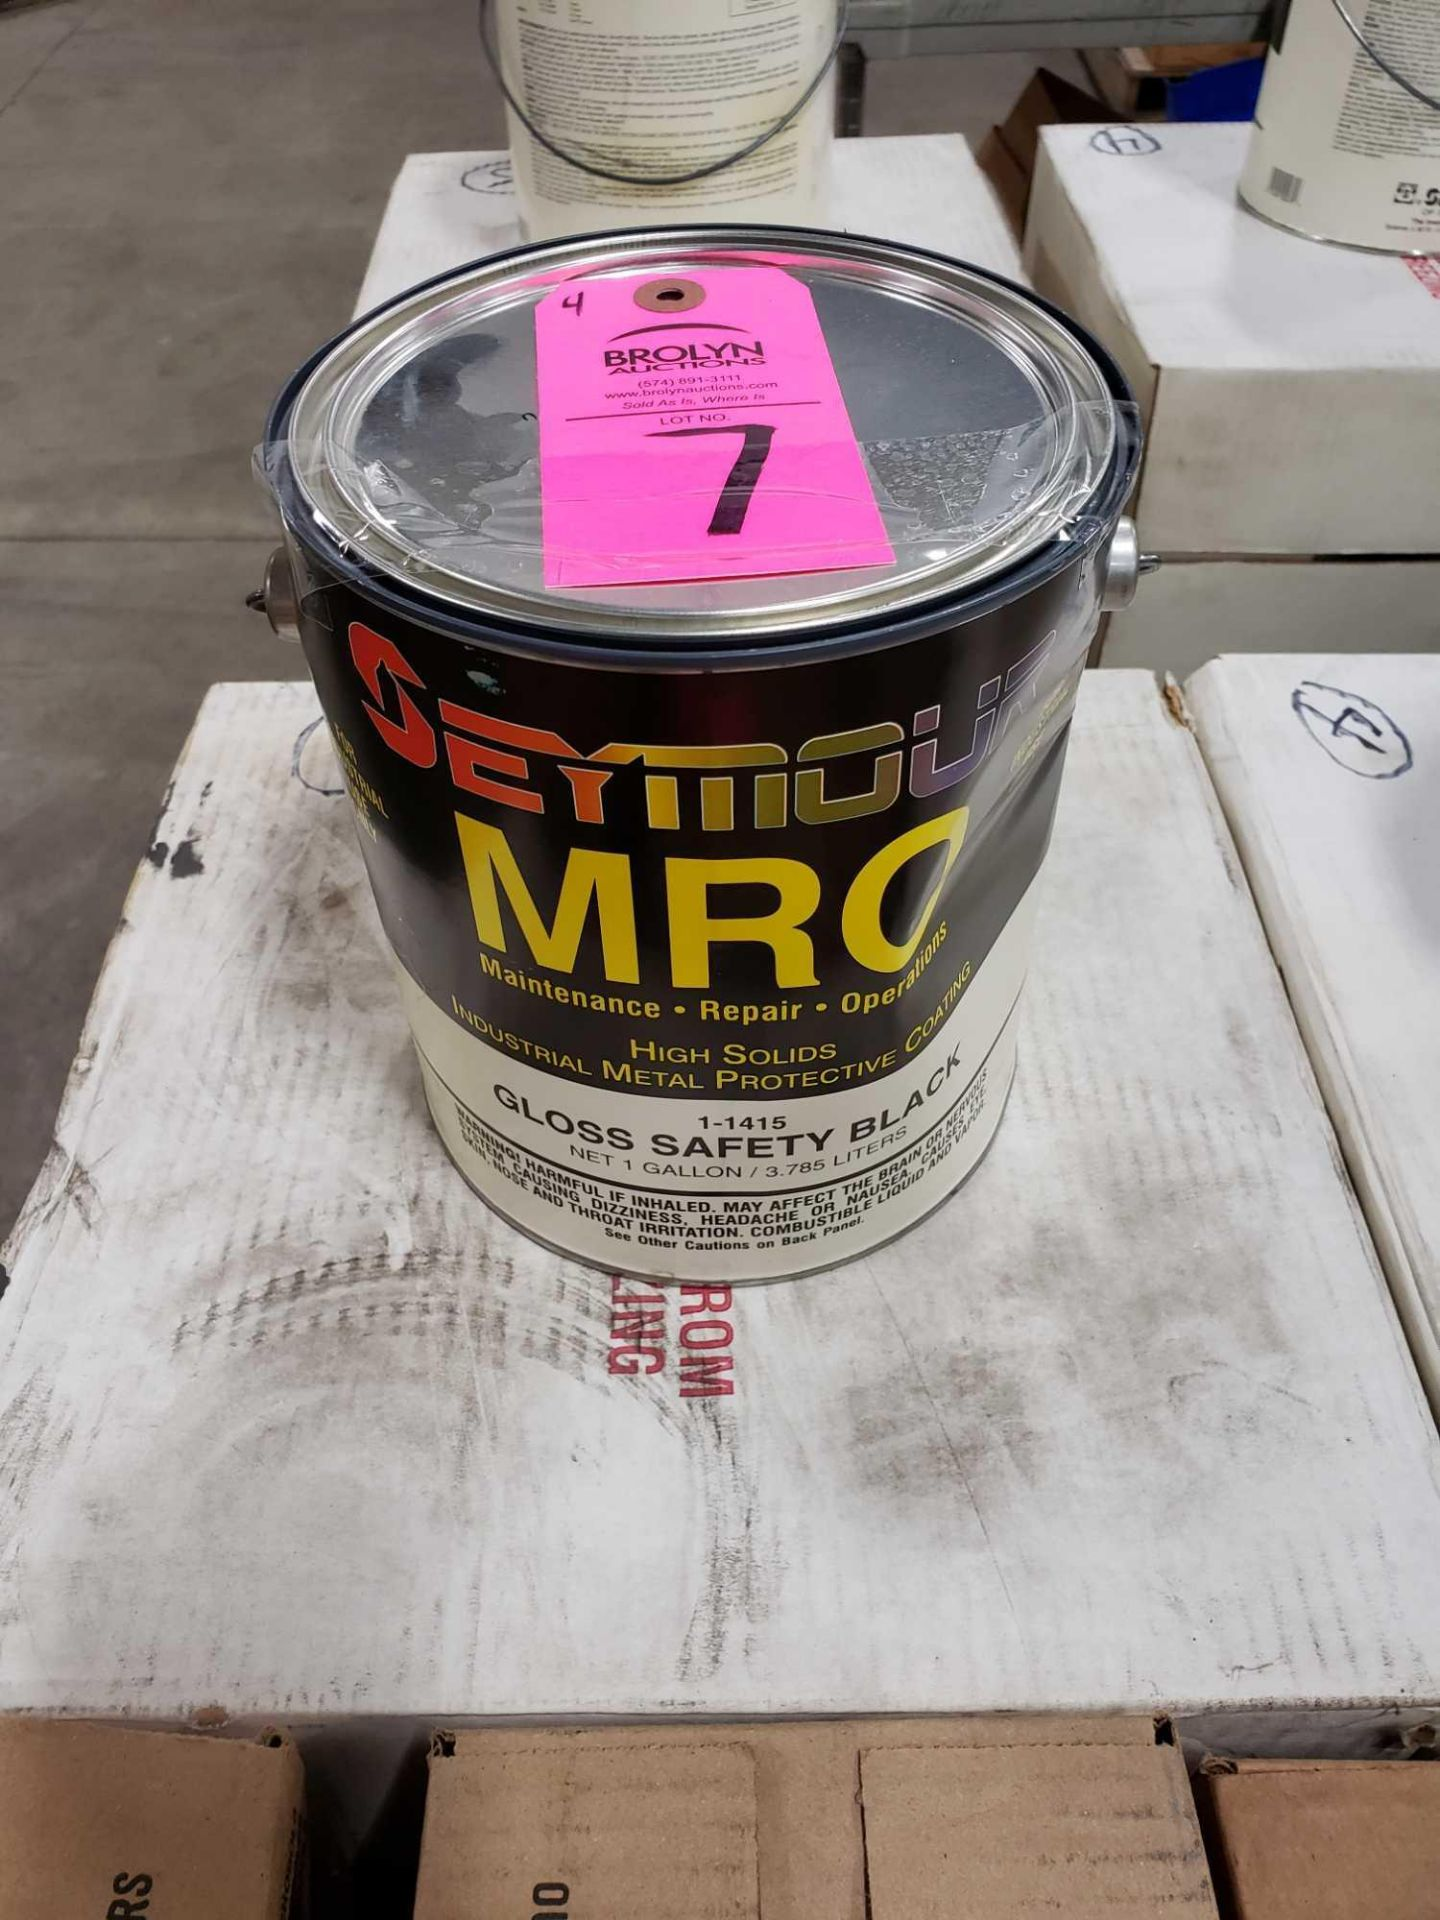 Lot 7 - Qty 4 - Seymour MRO paint Gloss Safety Black model 1-1415. New as pictured.